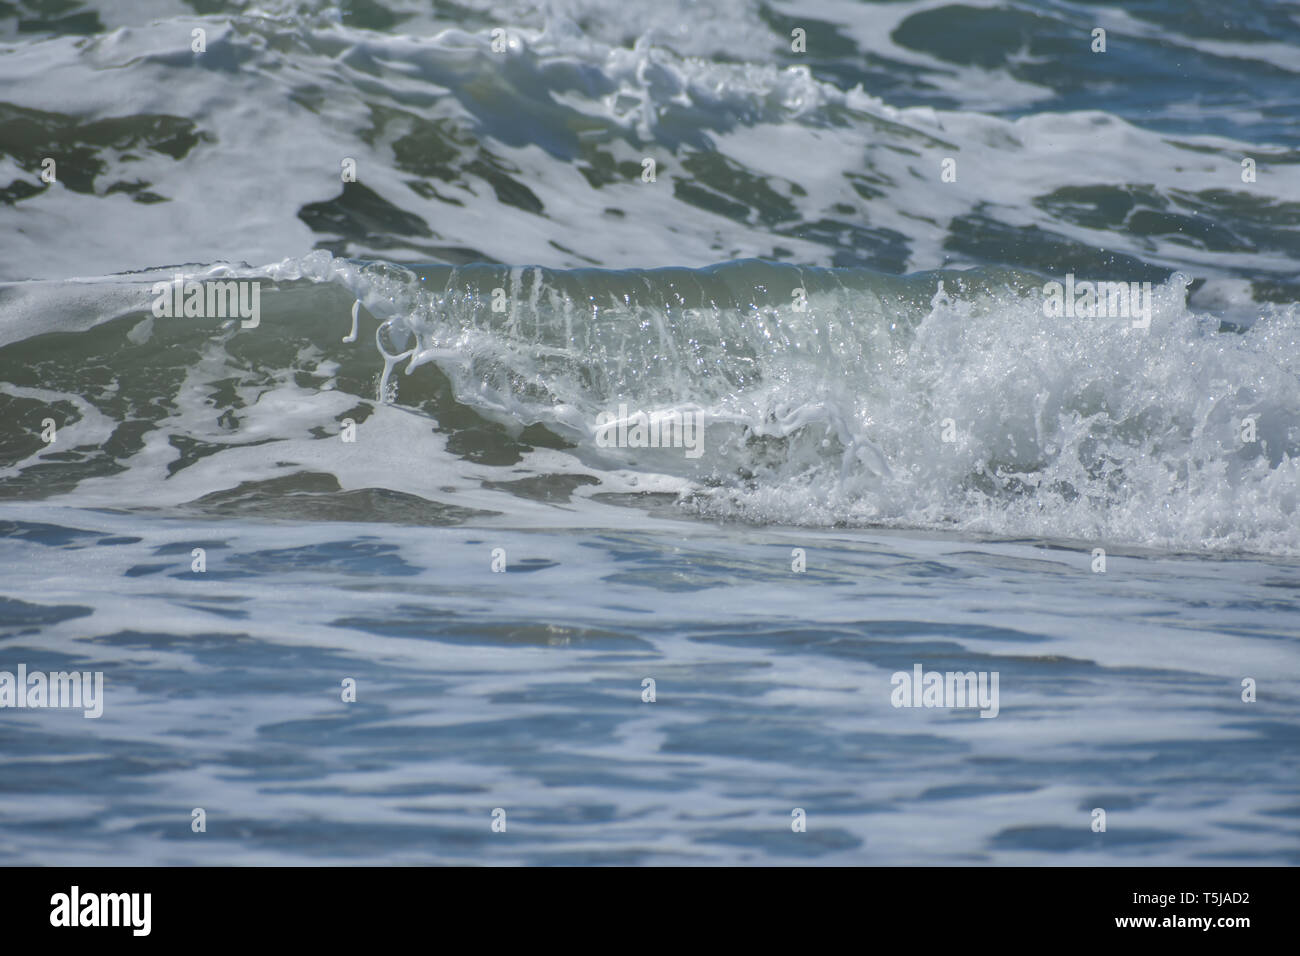 A rolling ocean wave crashing onto the shore forming a foamy spray. - Stock Image